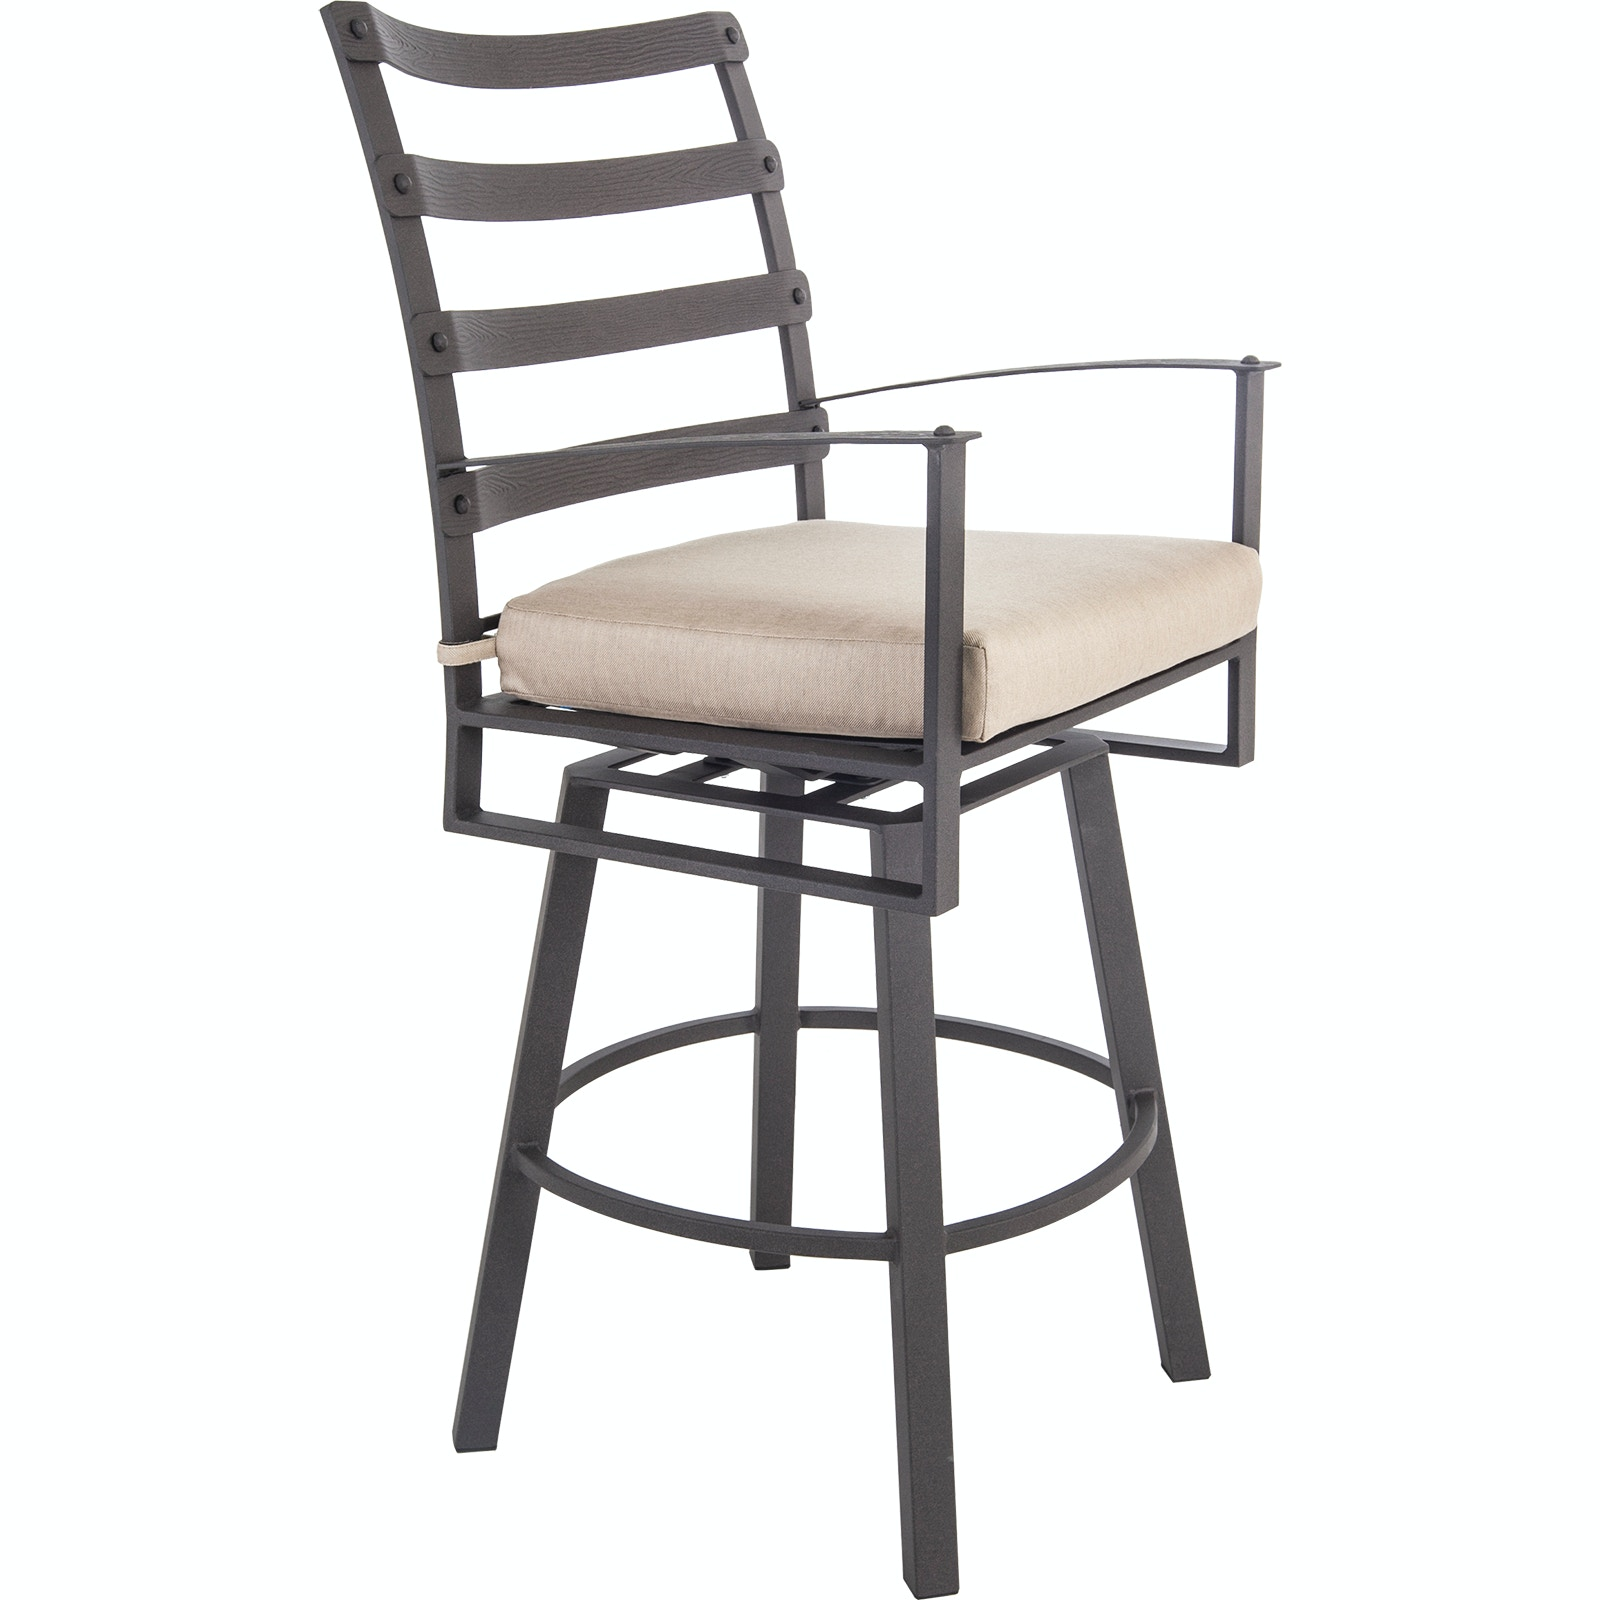 OW Lee Furniture Ridgewood Swivel Bar Stool With Arms 7353 SBS